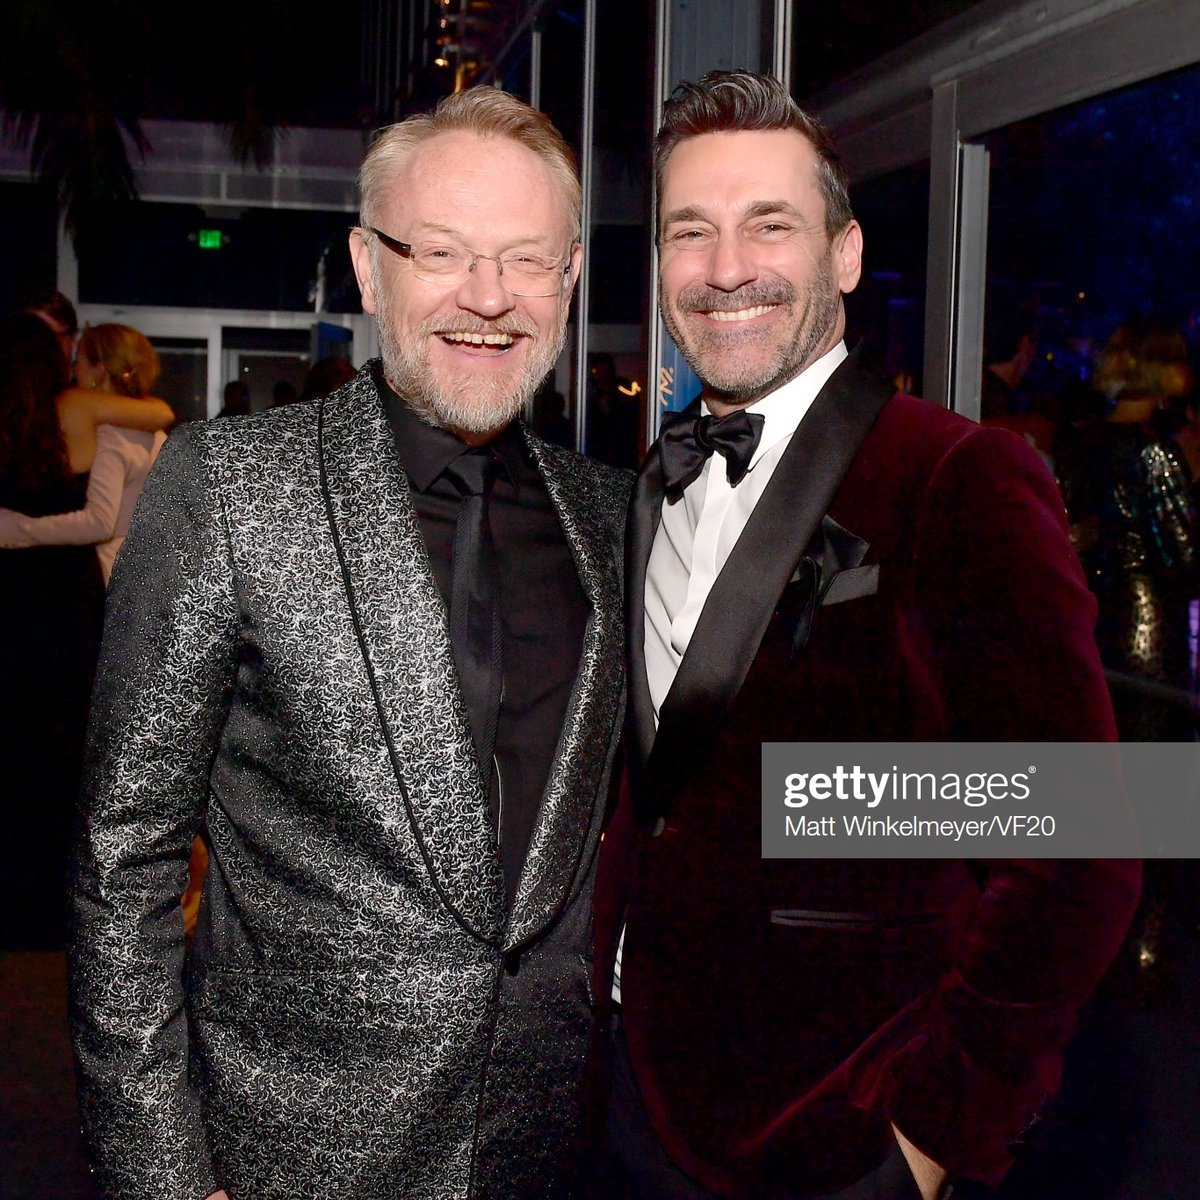 Mad Men Pics On Twitter Don And Lane Reunion Jared Harris And Jon Hamm At The 2020 Vanity Fair Oscar Party On February 09 2020 Oscars Https T Co Cth6eqxjaa